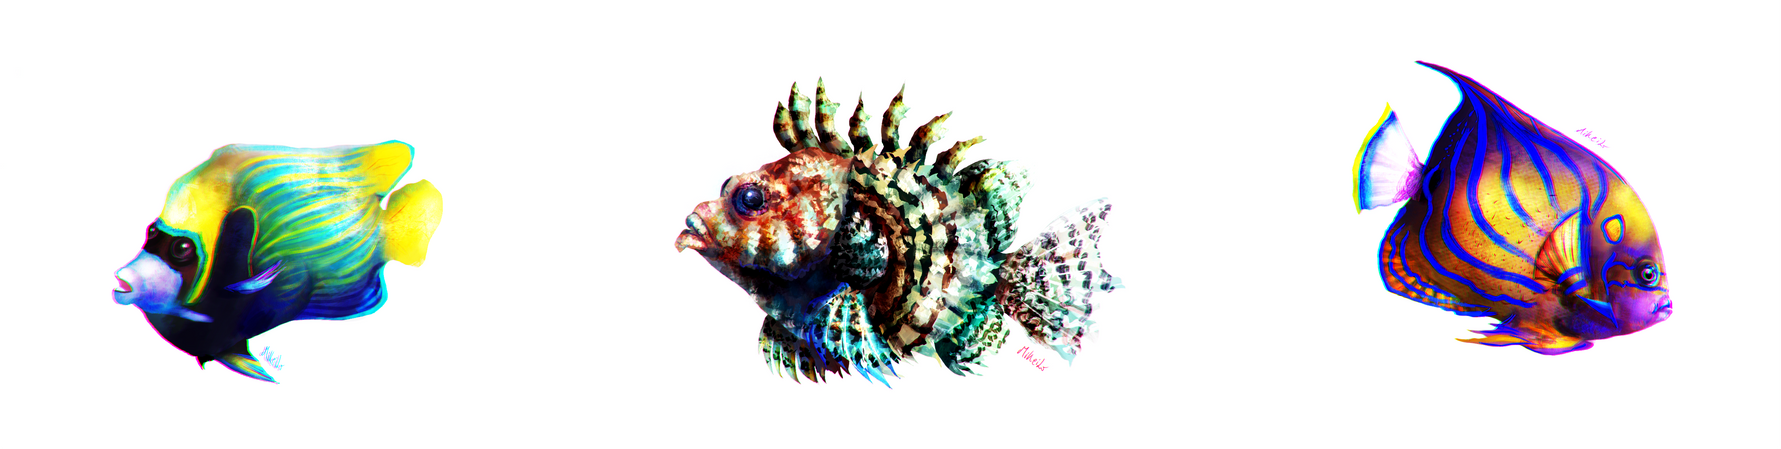 Some fish by MiKeiLo